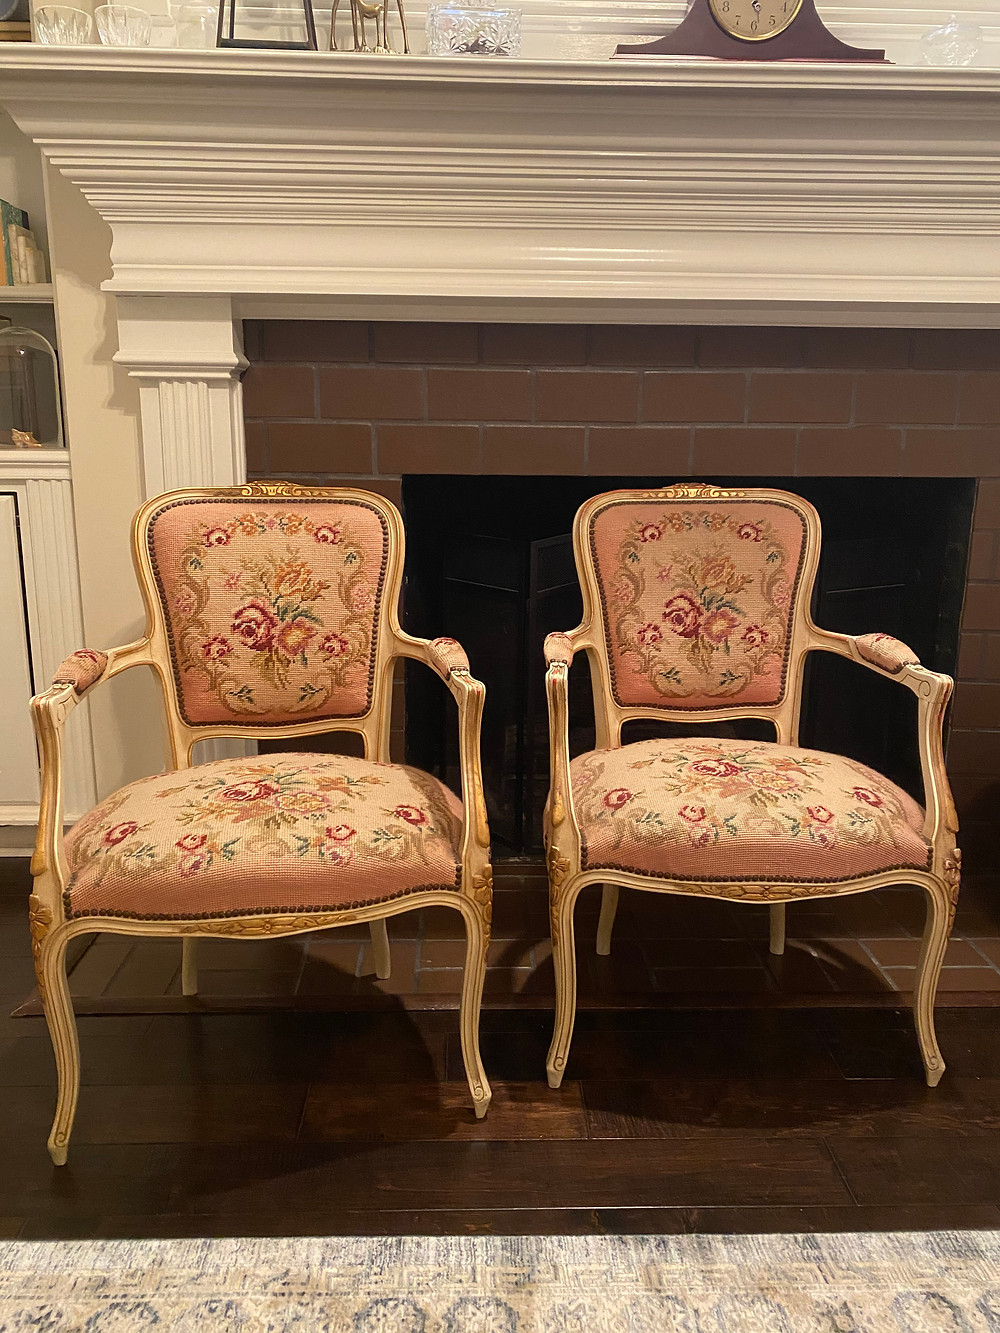 how to find antiques on facebook marketplace, french antique chairs